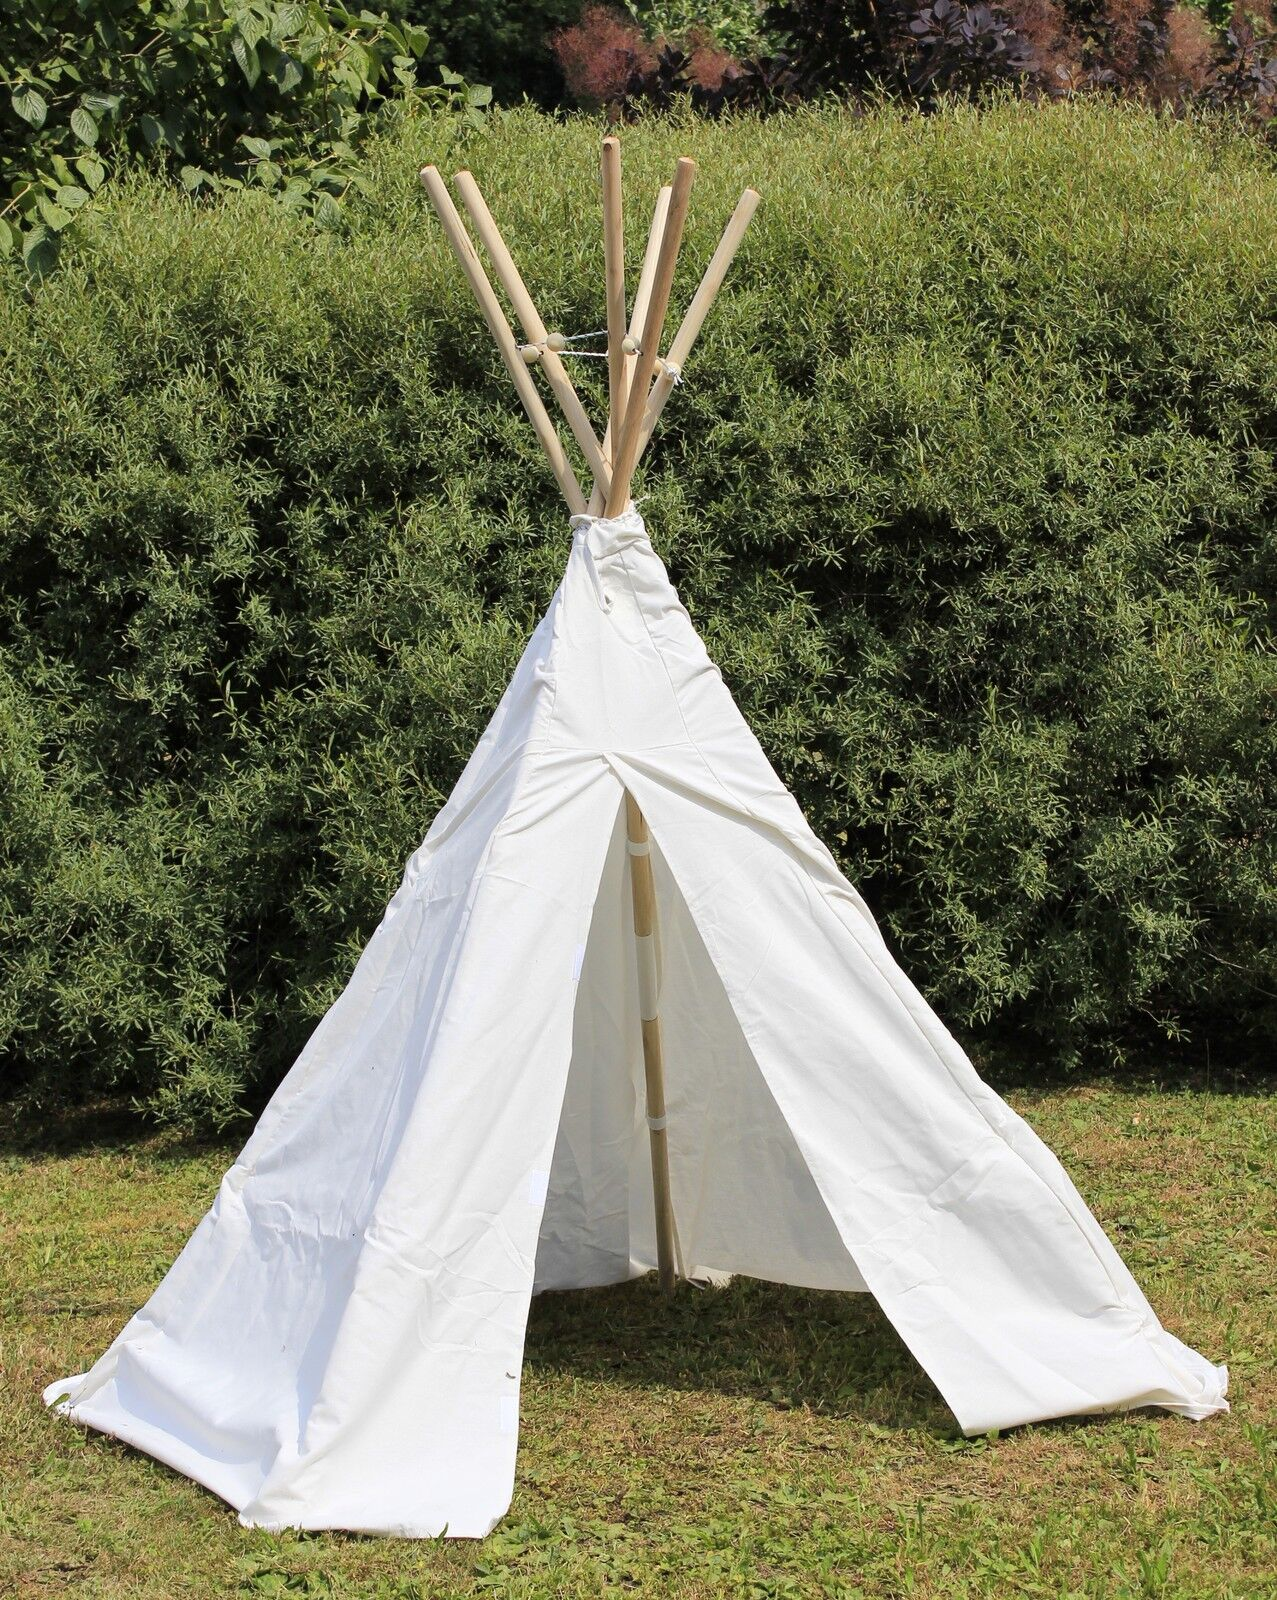 kinder tipi wigwam kinderzelt indianer zelt mit holz stangen 110 069 eur 89 00 picclick de. Black Bedroom Furniture Sets. Home Design Ideas